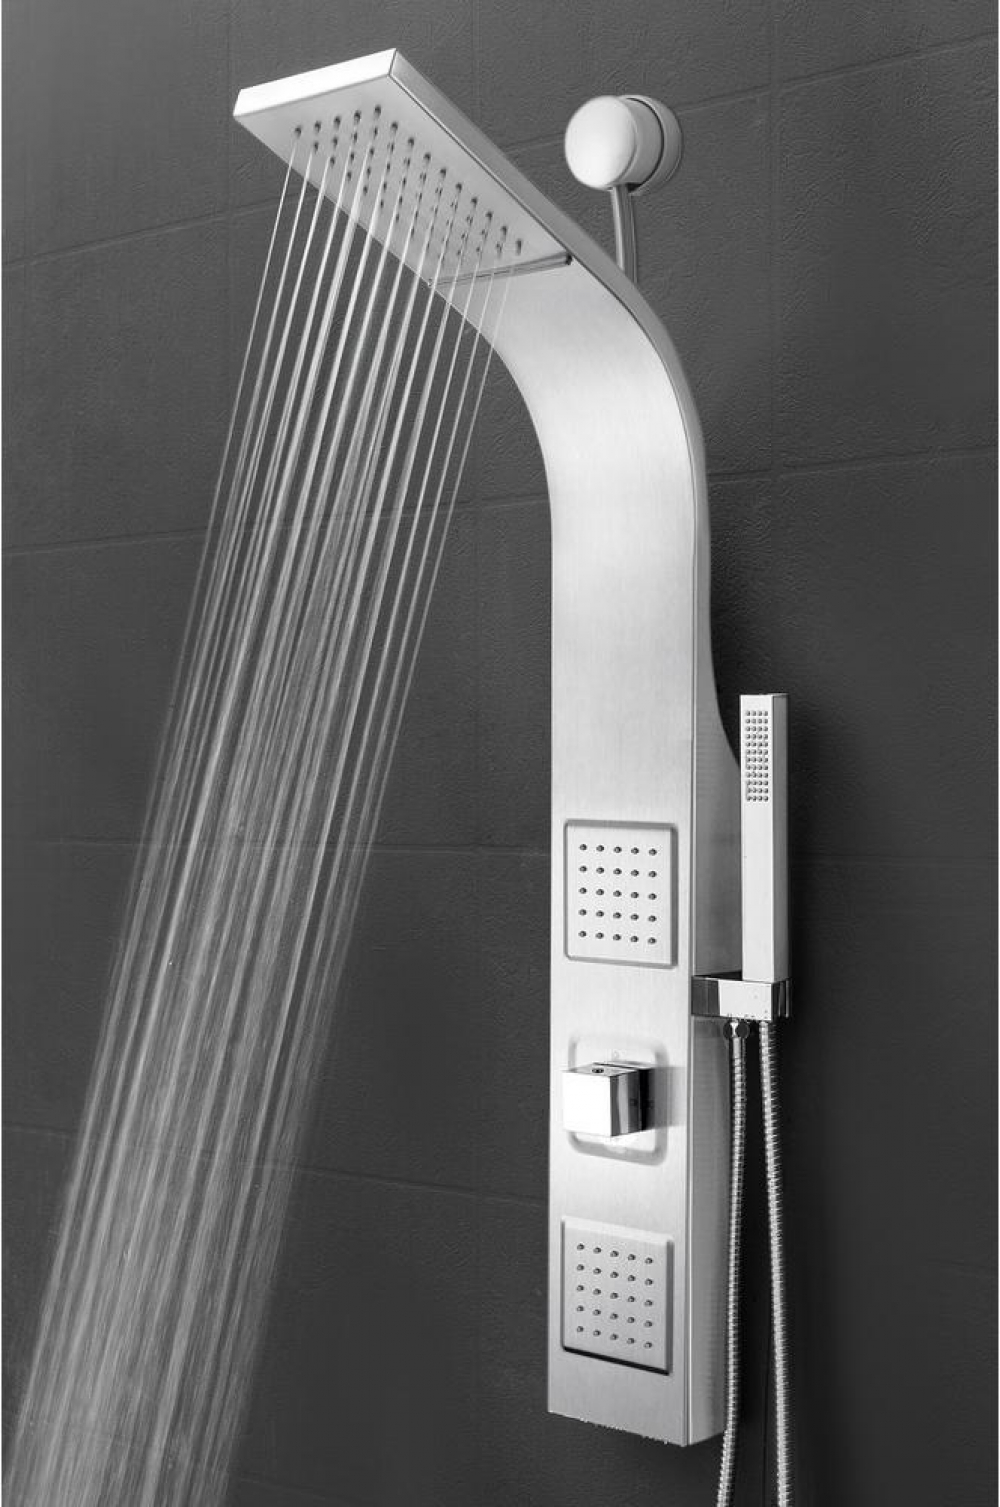 Details About Akdy 39 In 2 Jet Shower Panel System Rainfall Waterfall Shower Head Handheld